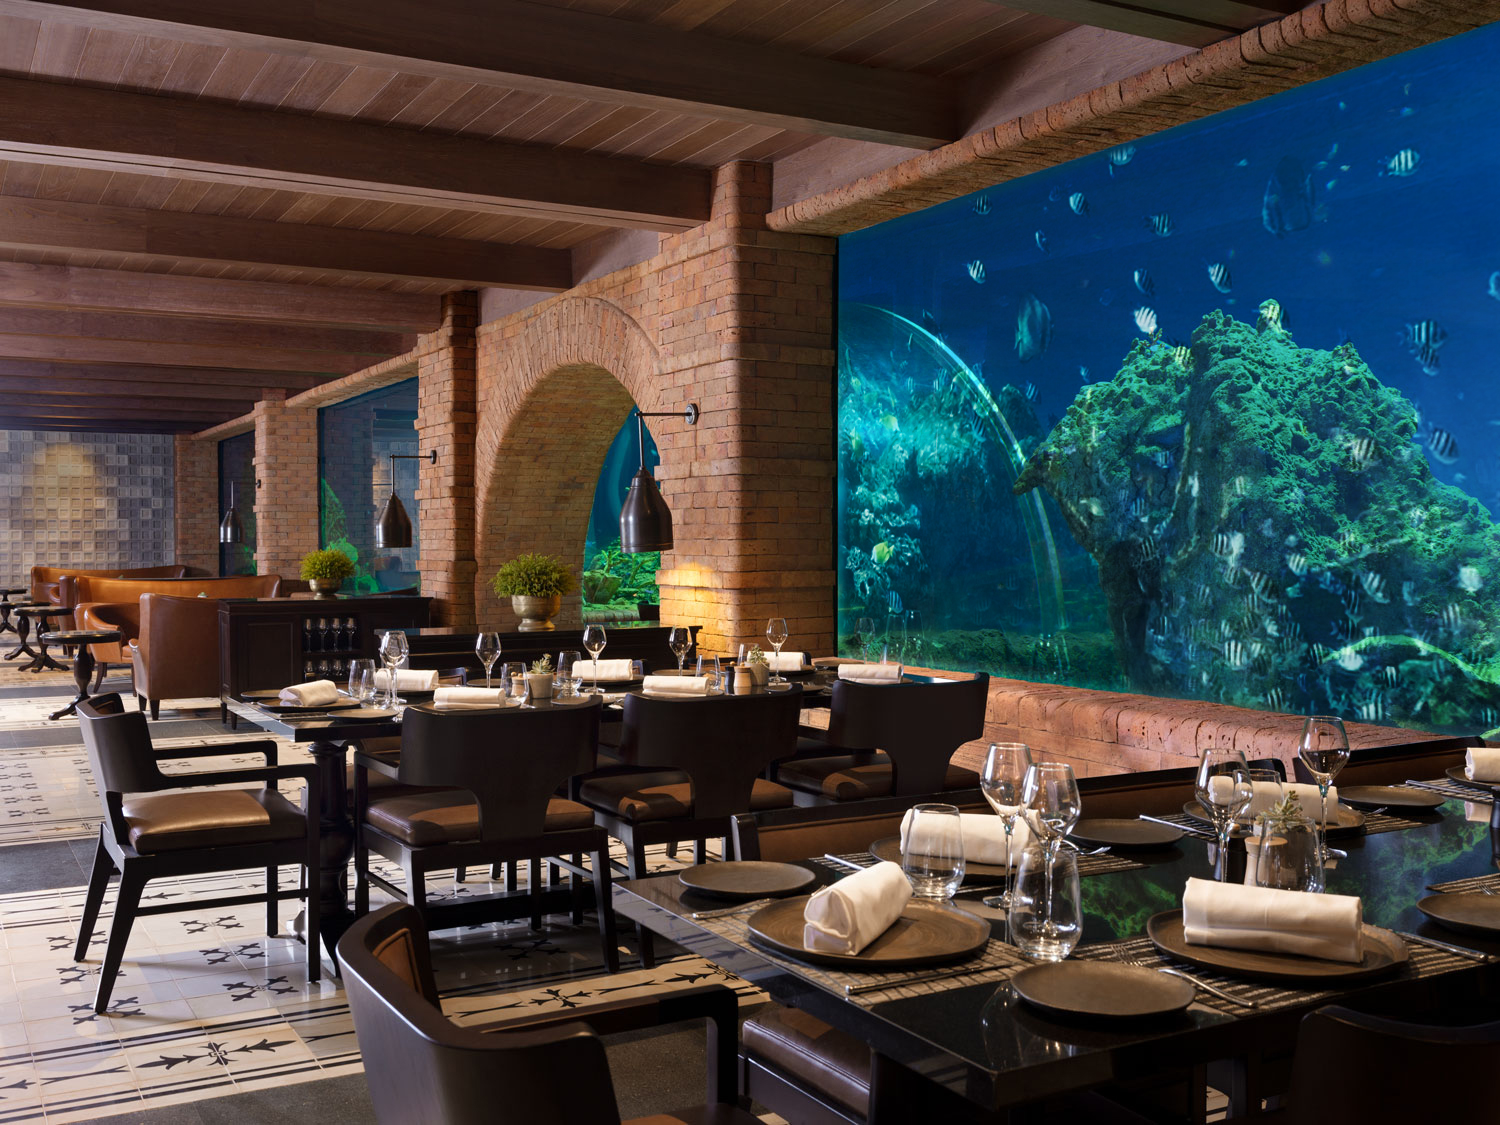 http://highend-traveller.com/the-apurva-kempinski-bali-reintroduces-koral-restaurant-balis-first-aquarium-restaurant/